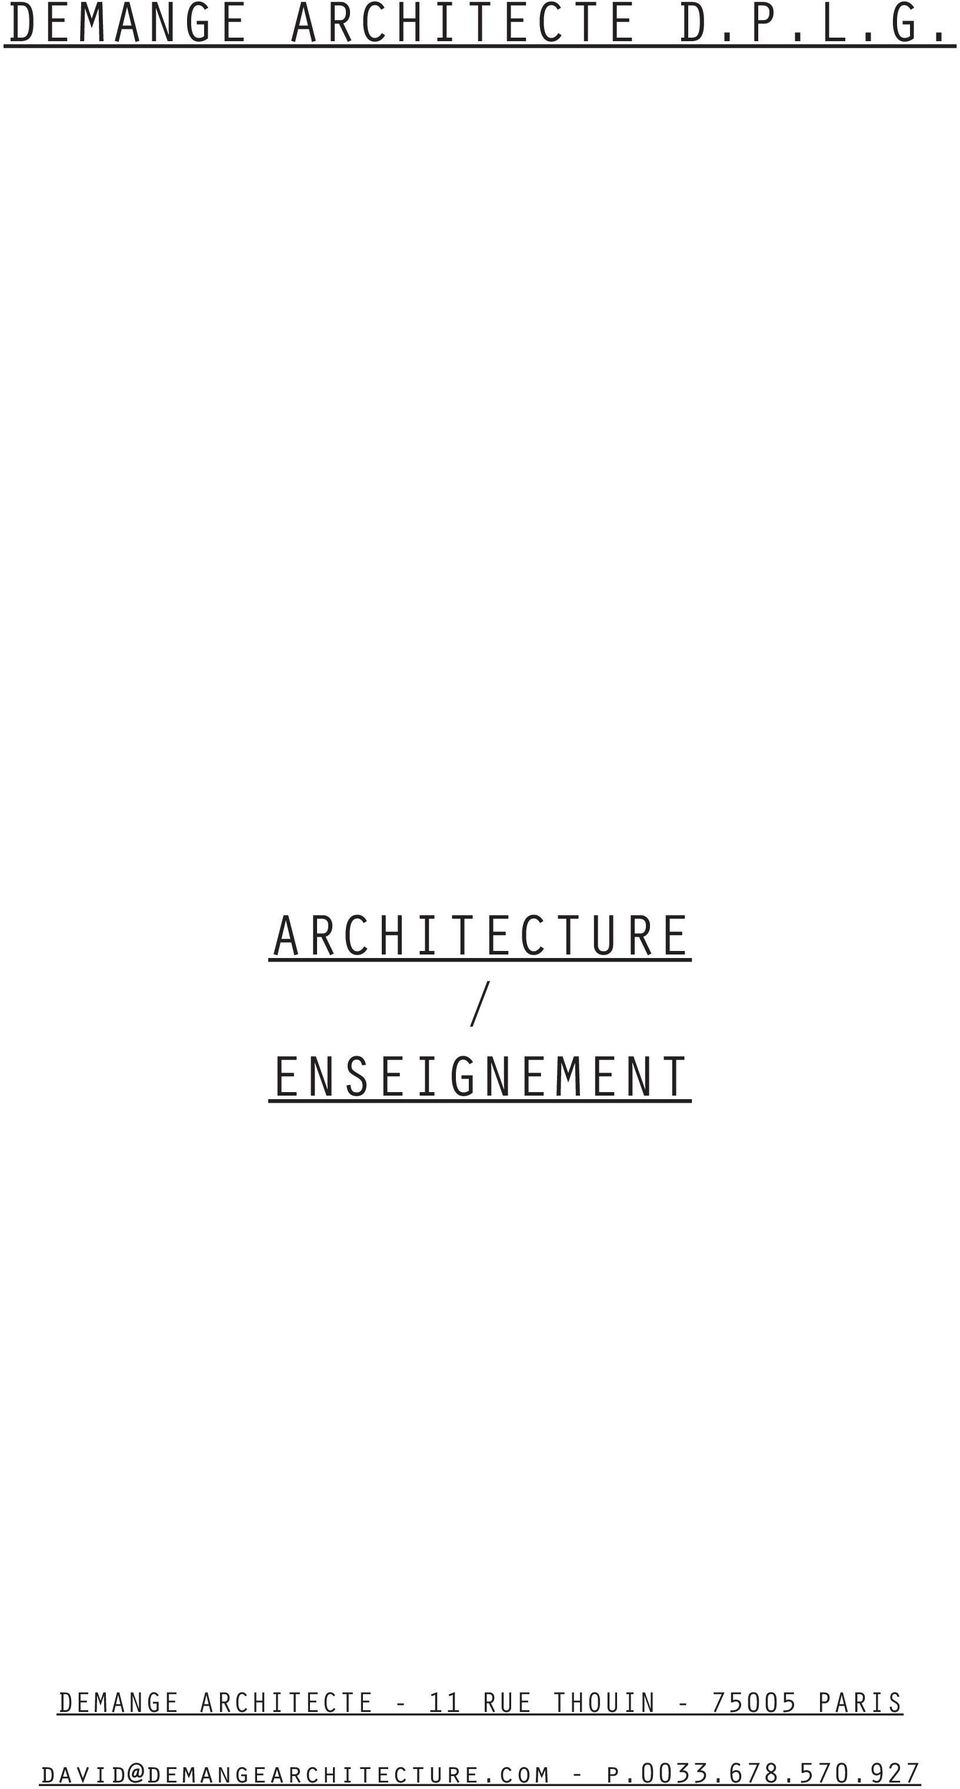 ARCHITECTURE / ENSEIGNEMENT